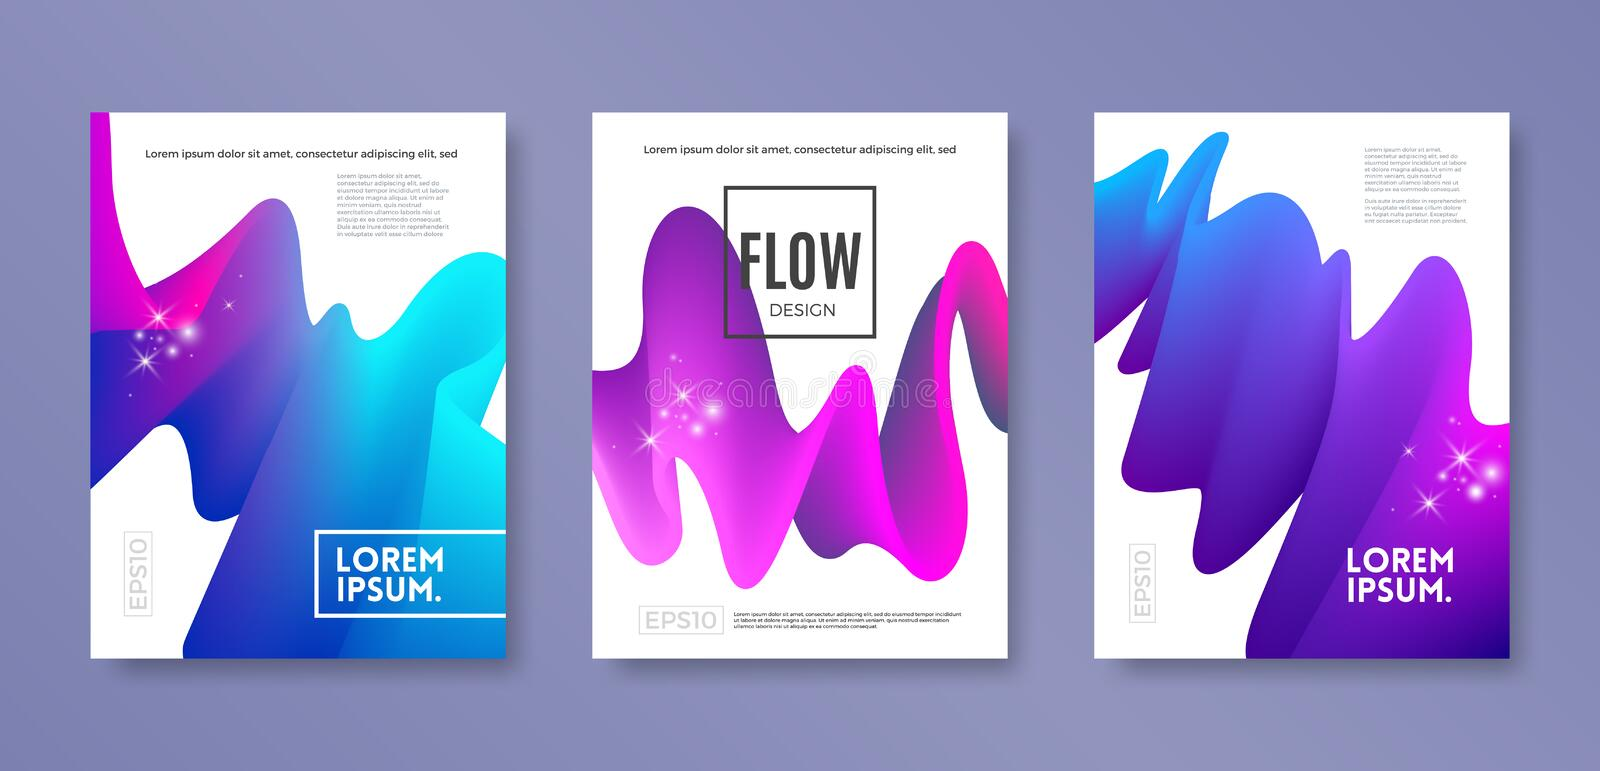 Set of cover design with abstract multicolored flow shapes. Vector illustration template. Universal abstract design for covers royalty free illustration